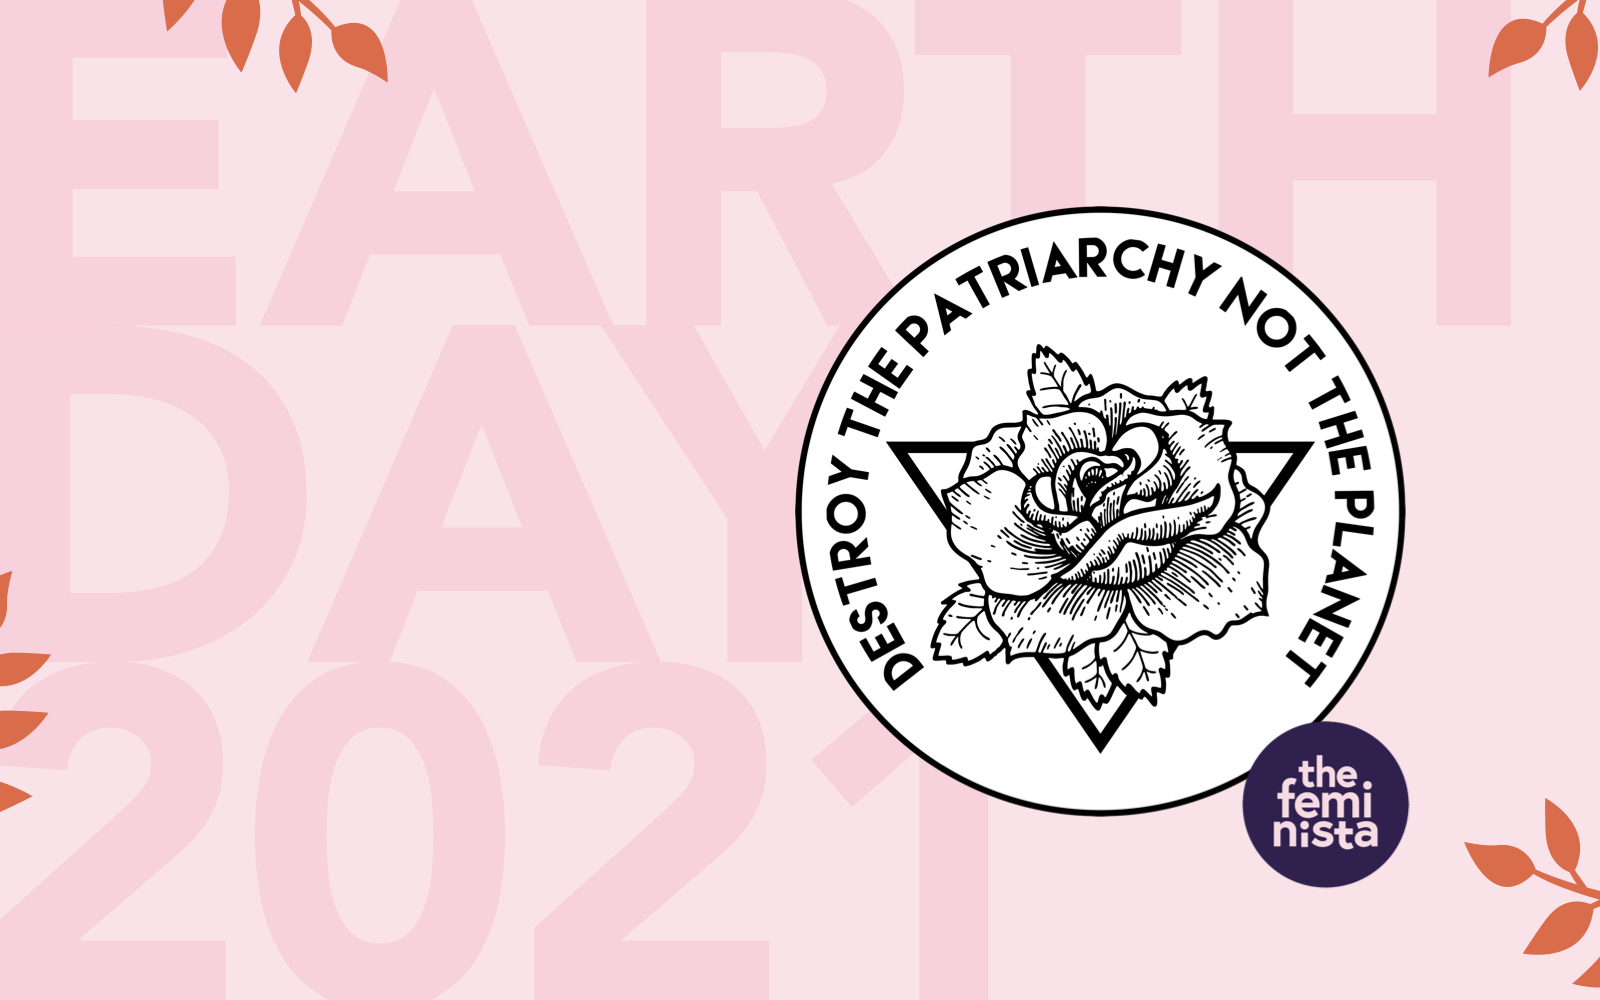 Earth Day 2021: Destroy the Patriarchy, Not the Planet Sticker from The Feminista